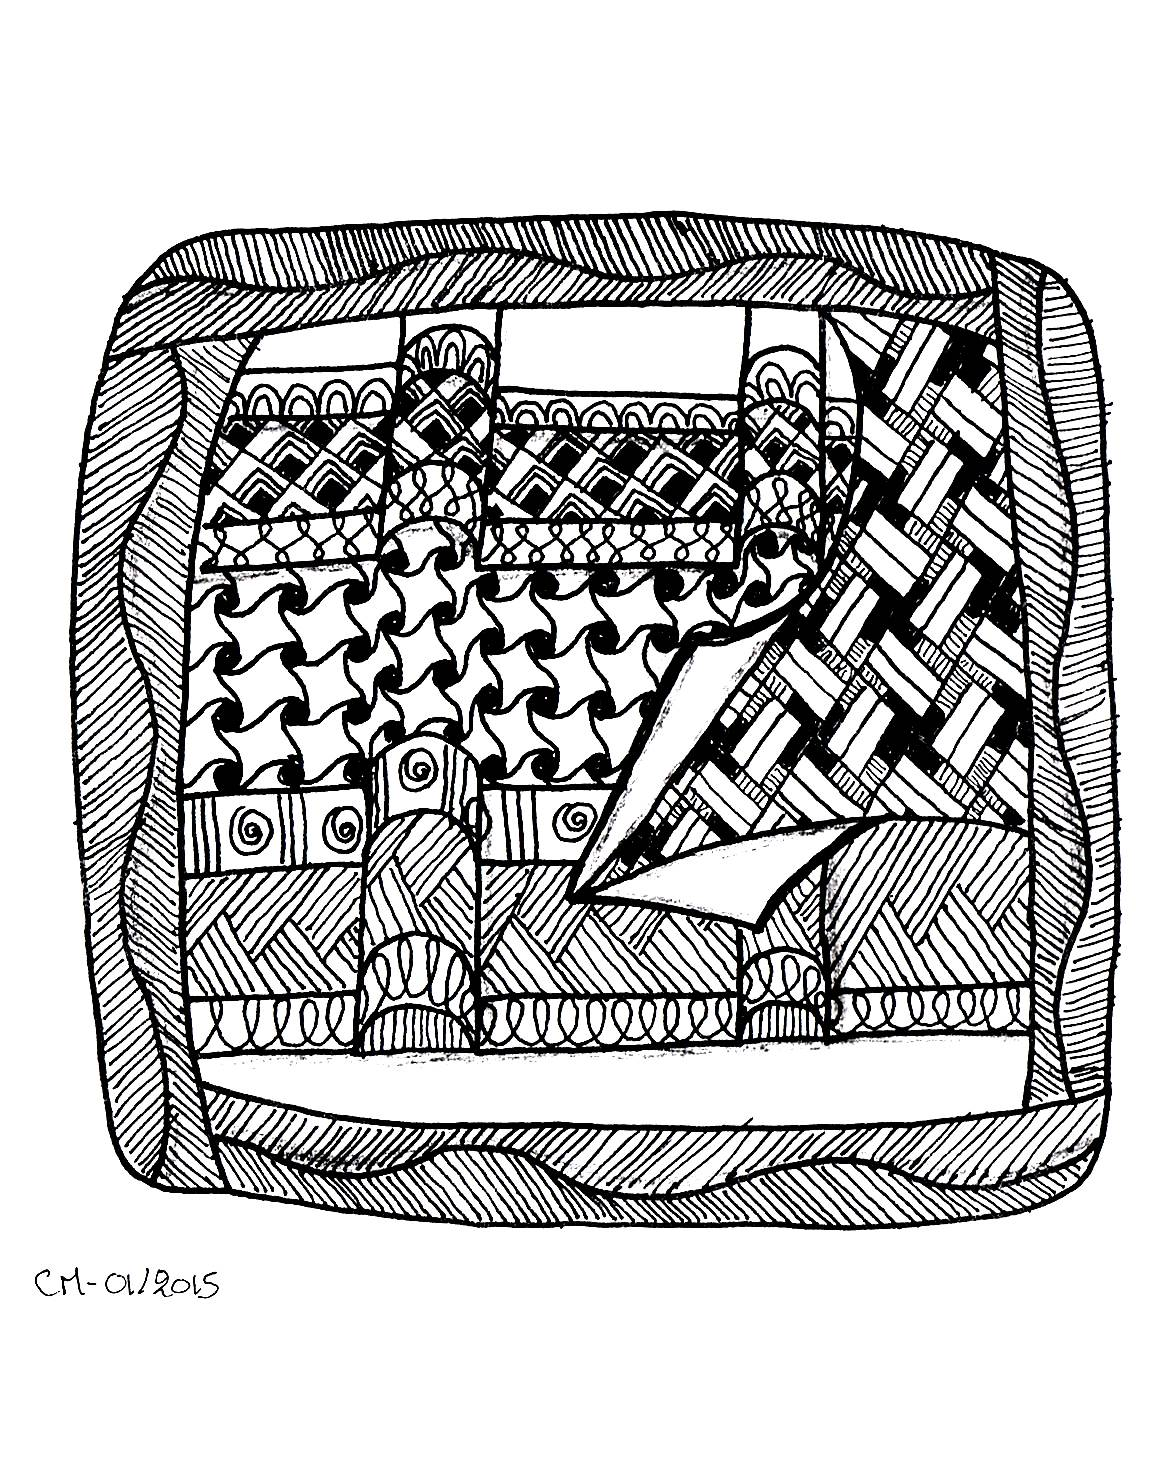 'Some tangles', exclusive coloring page See the original work